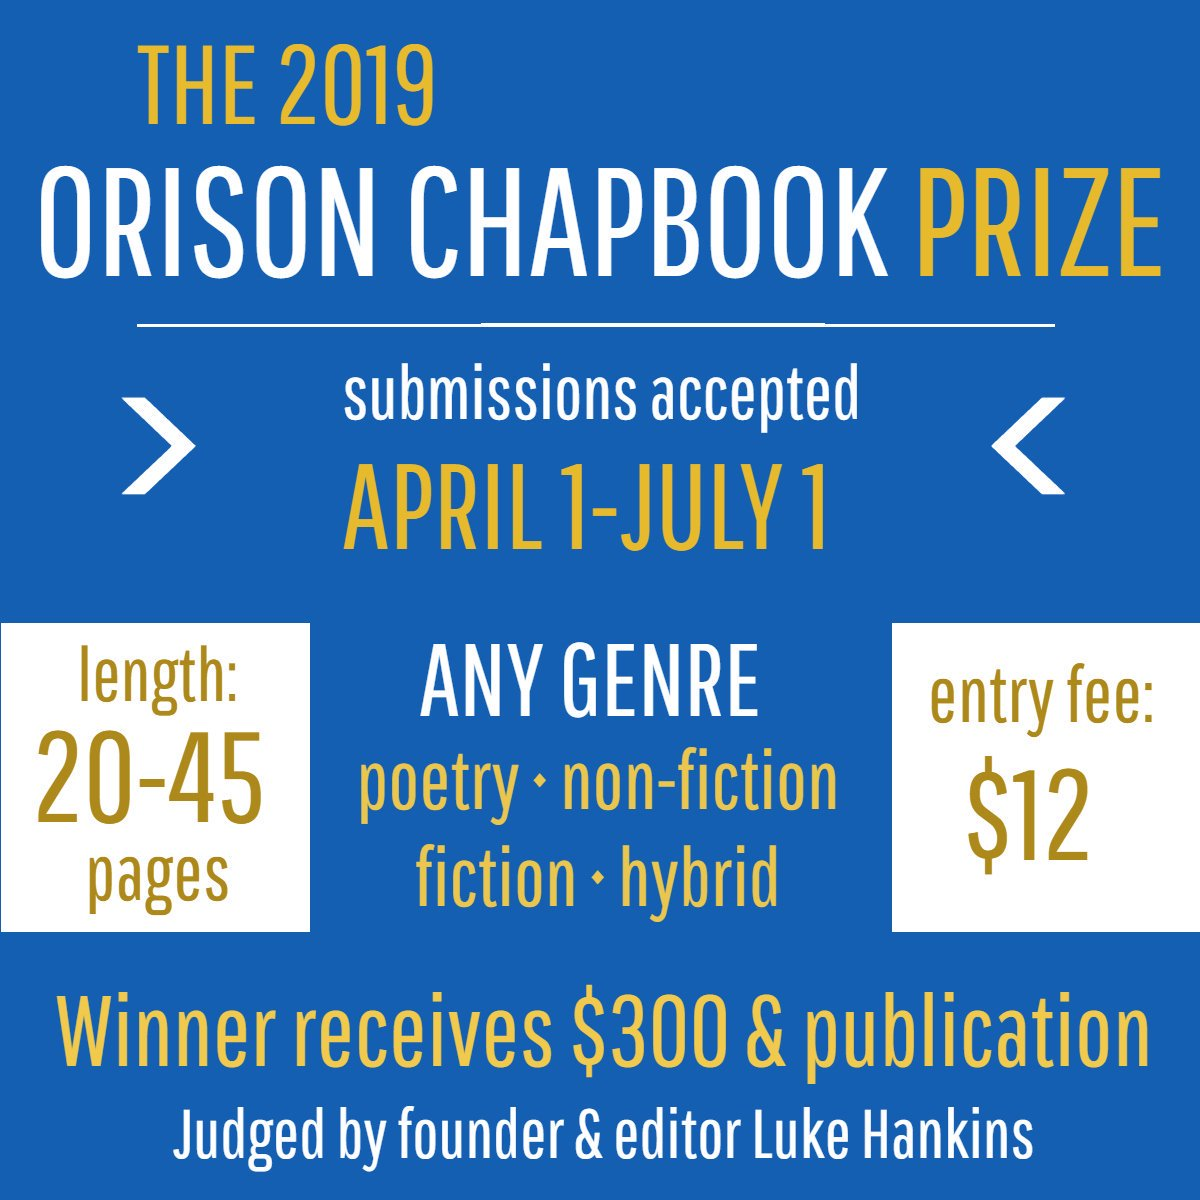 3f343ccd34f ... win $300 and publication for poetry, fiction, nonfiction, or hybrid  work (20-45 pages) | orisonbooks.submittable.com/submit/132839/…